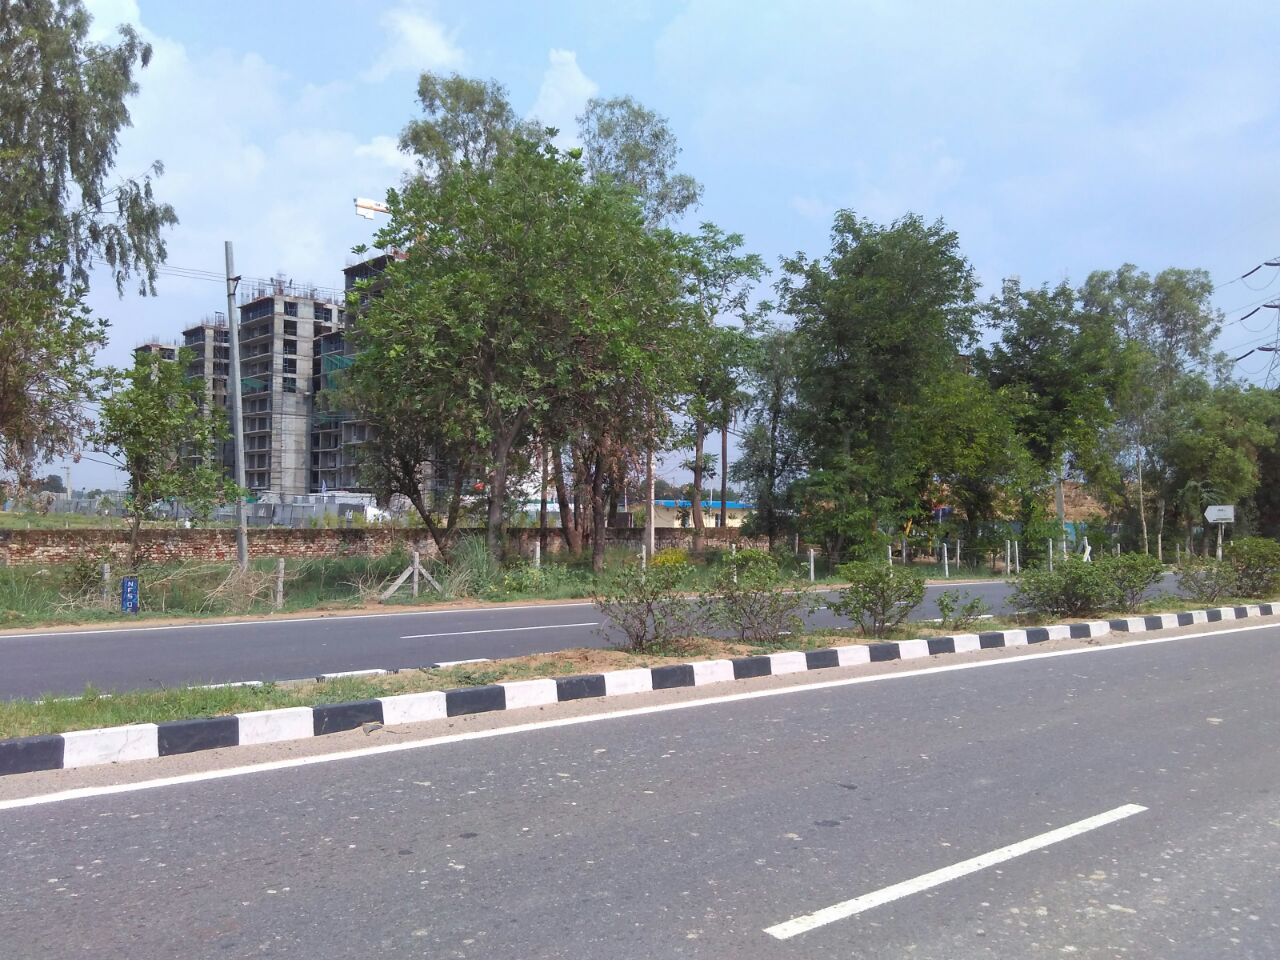 Existing connectivity to South of Gurgaon